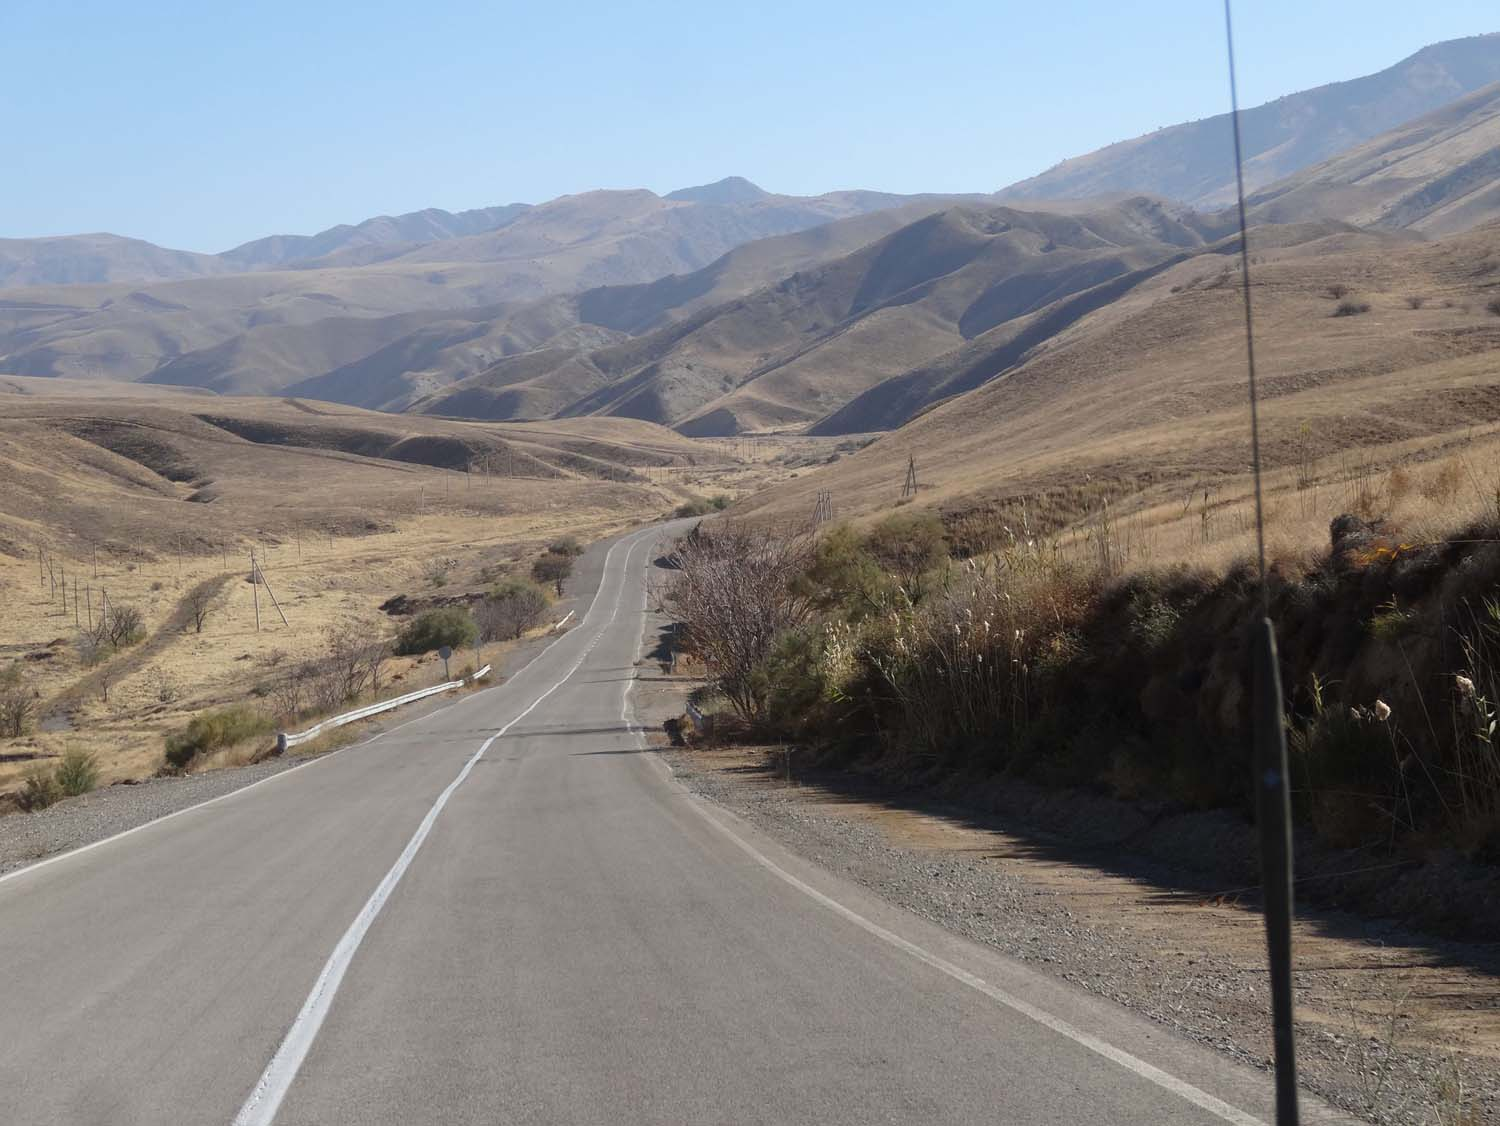 the long road to the actual border control